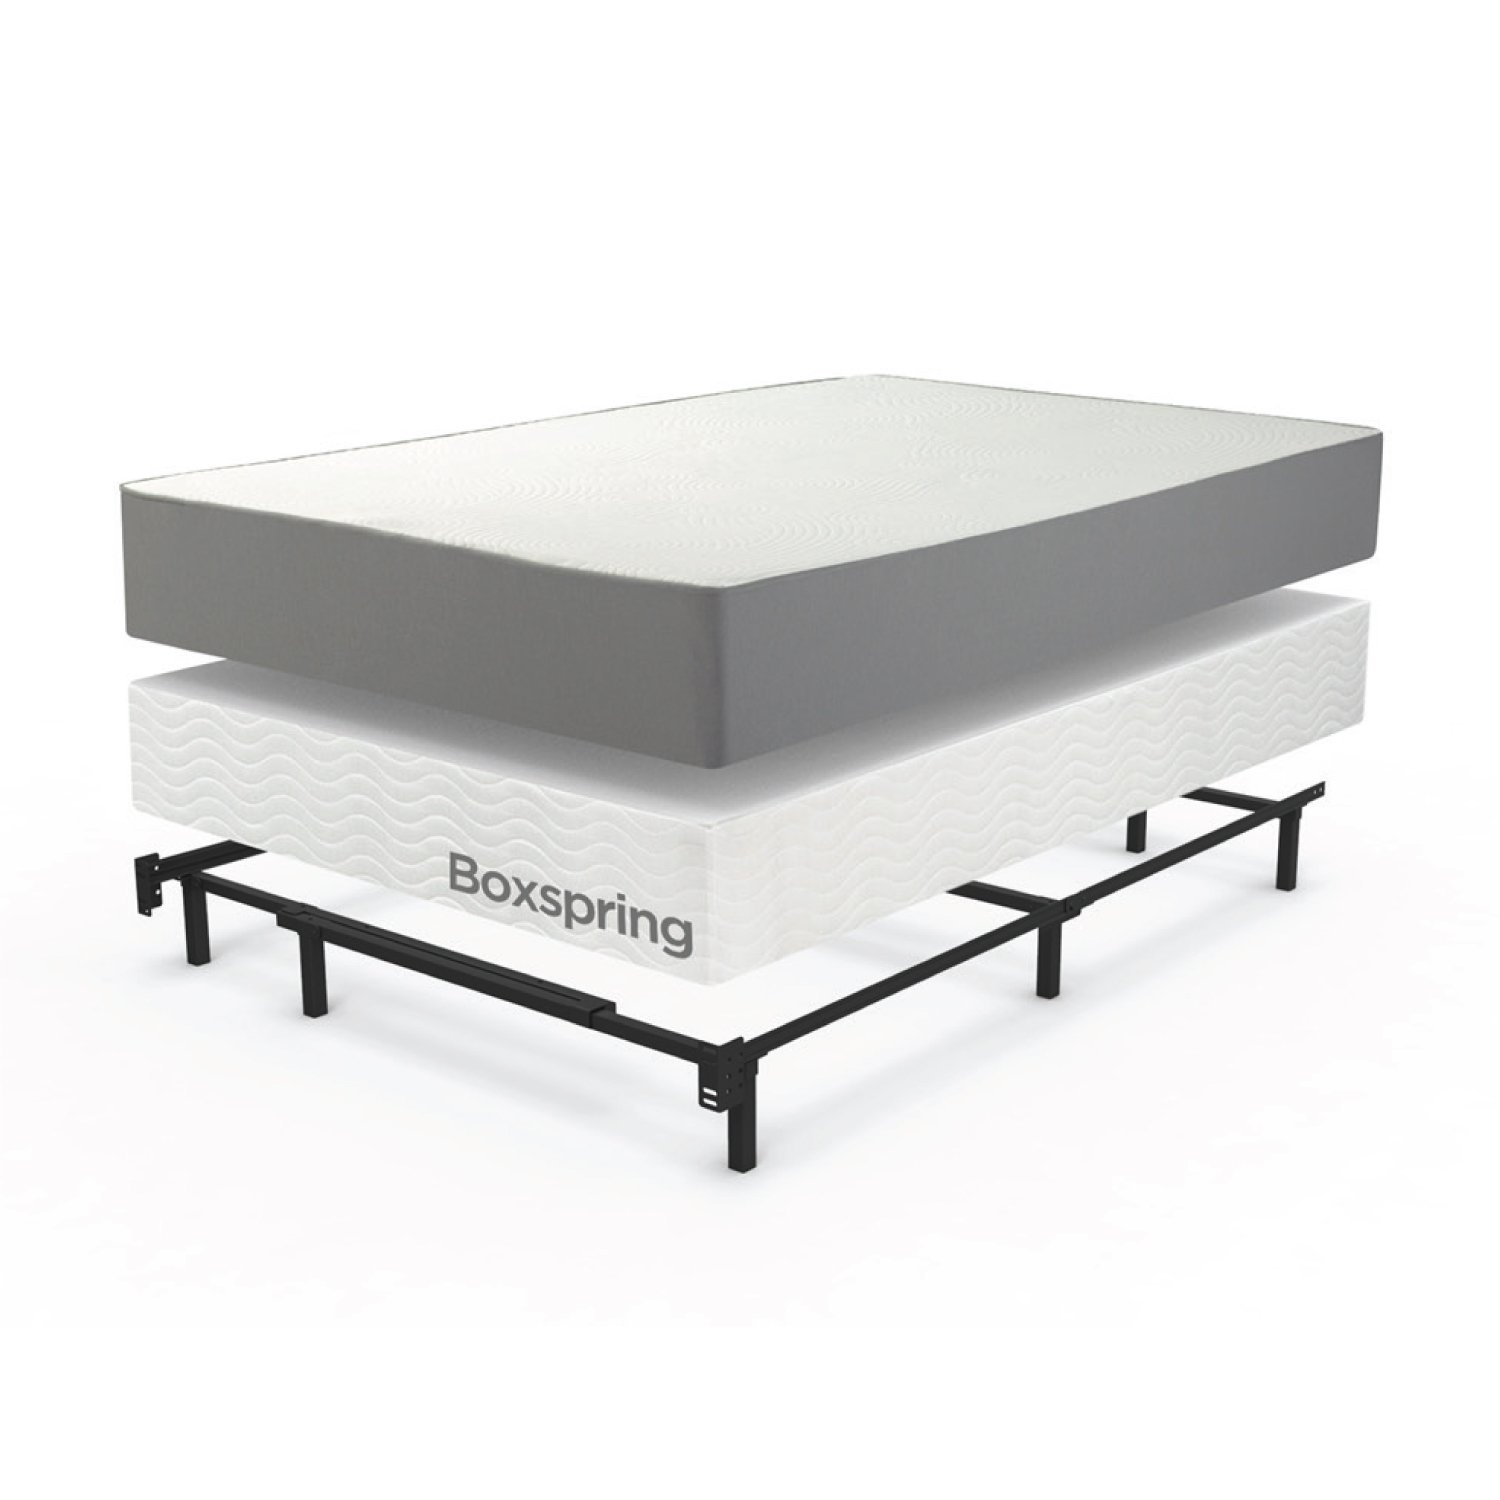 home adjustable steel bed frame for box spring mattress set full queen king size ebay. Black Bedroom Furniture Sets. Home Design Ideas